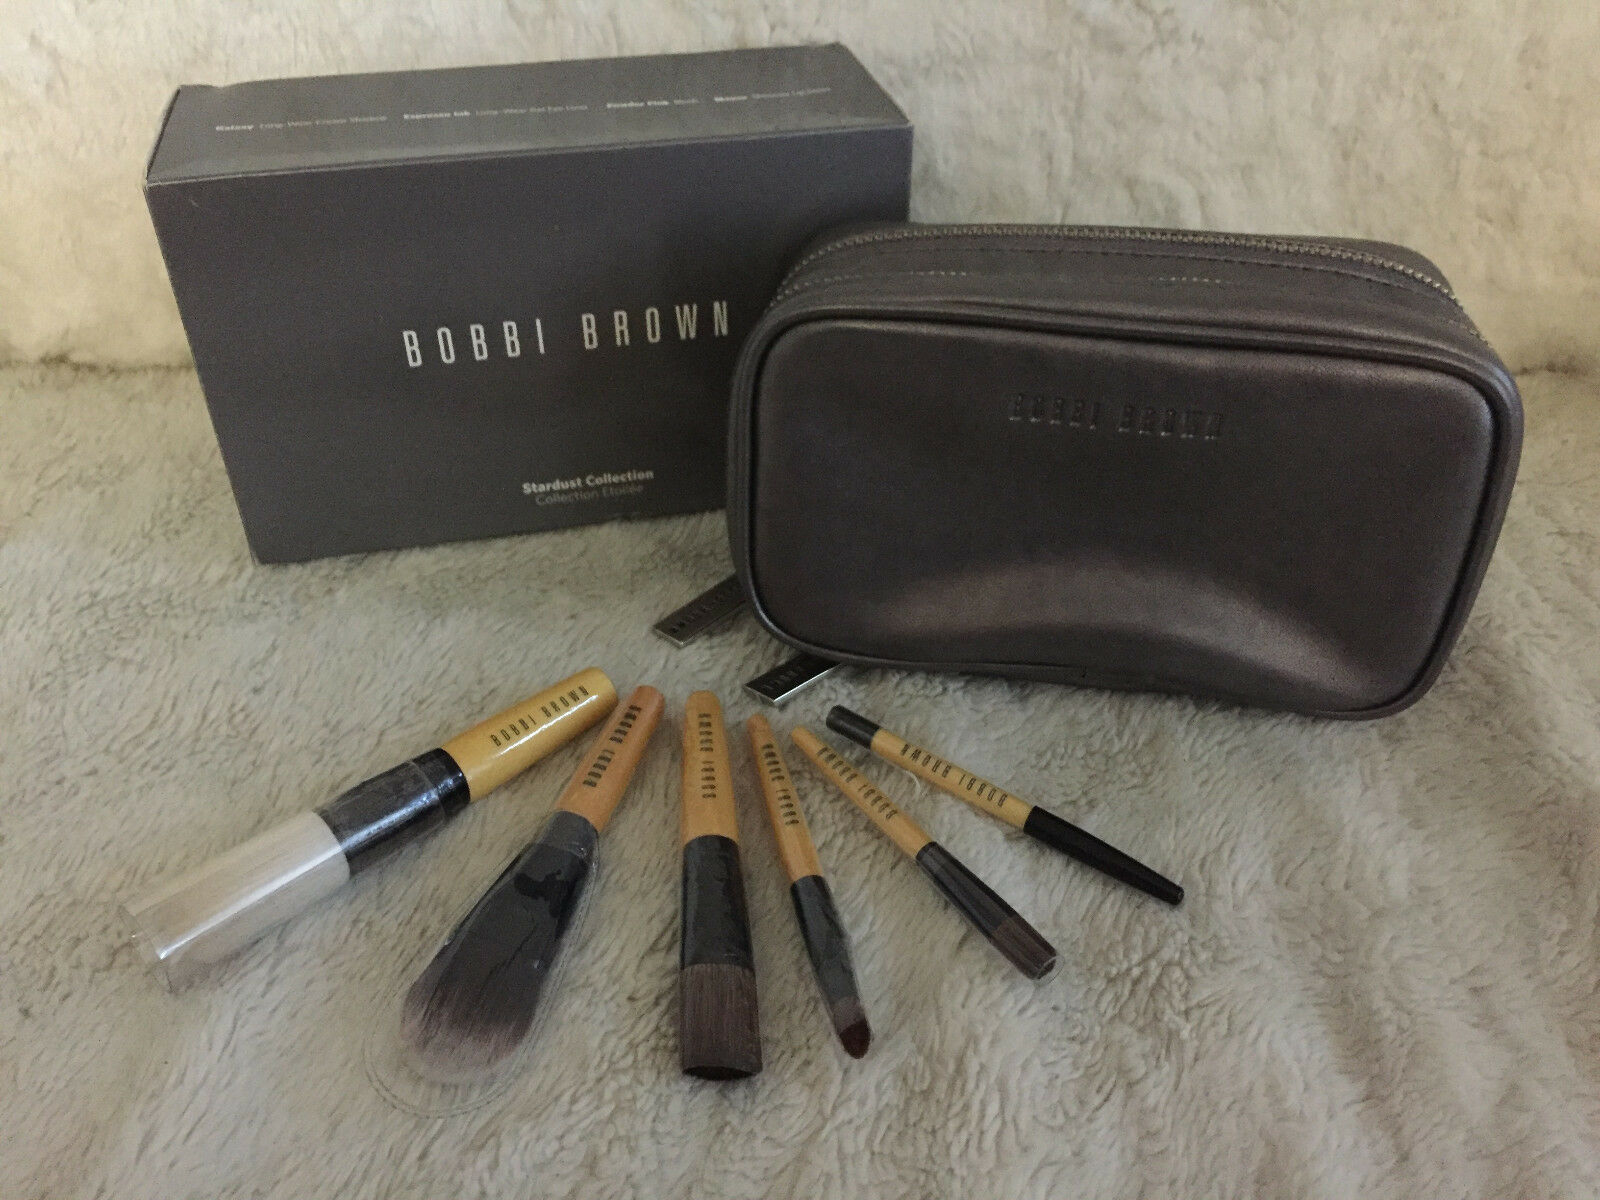 Primary image for NIB Bobbi Brown Stardust Collection 6pcs Mini Brush Set, Face Blender/Foundation